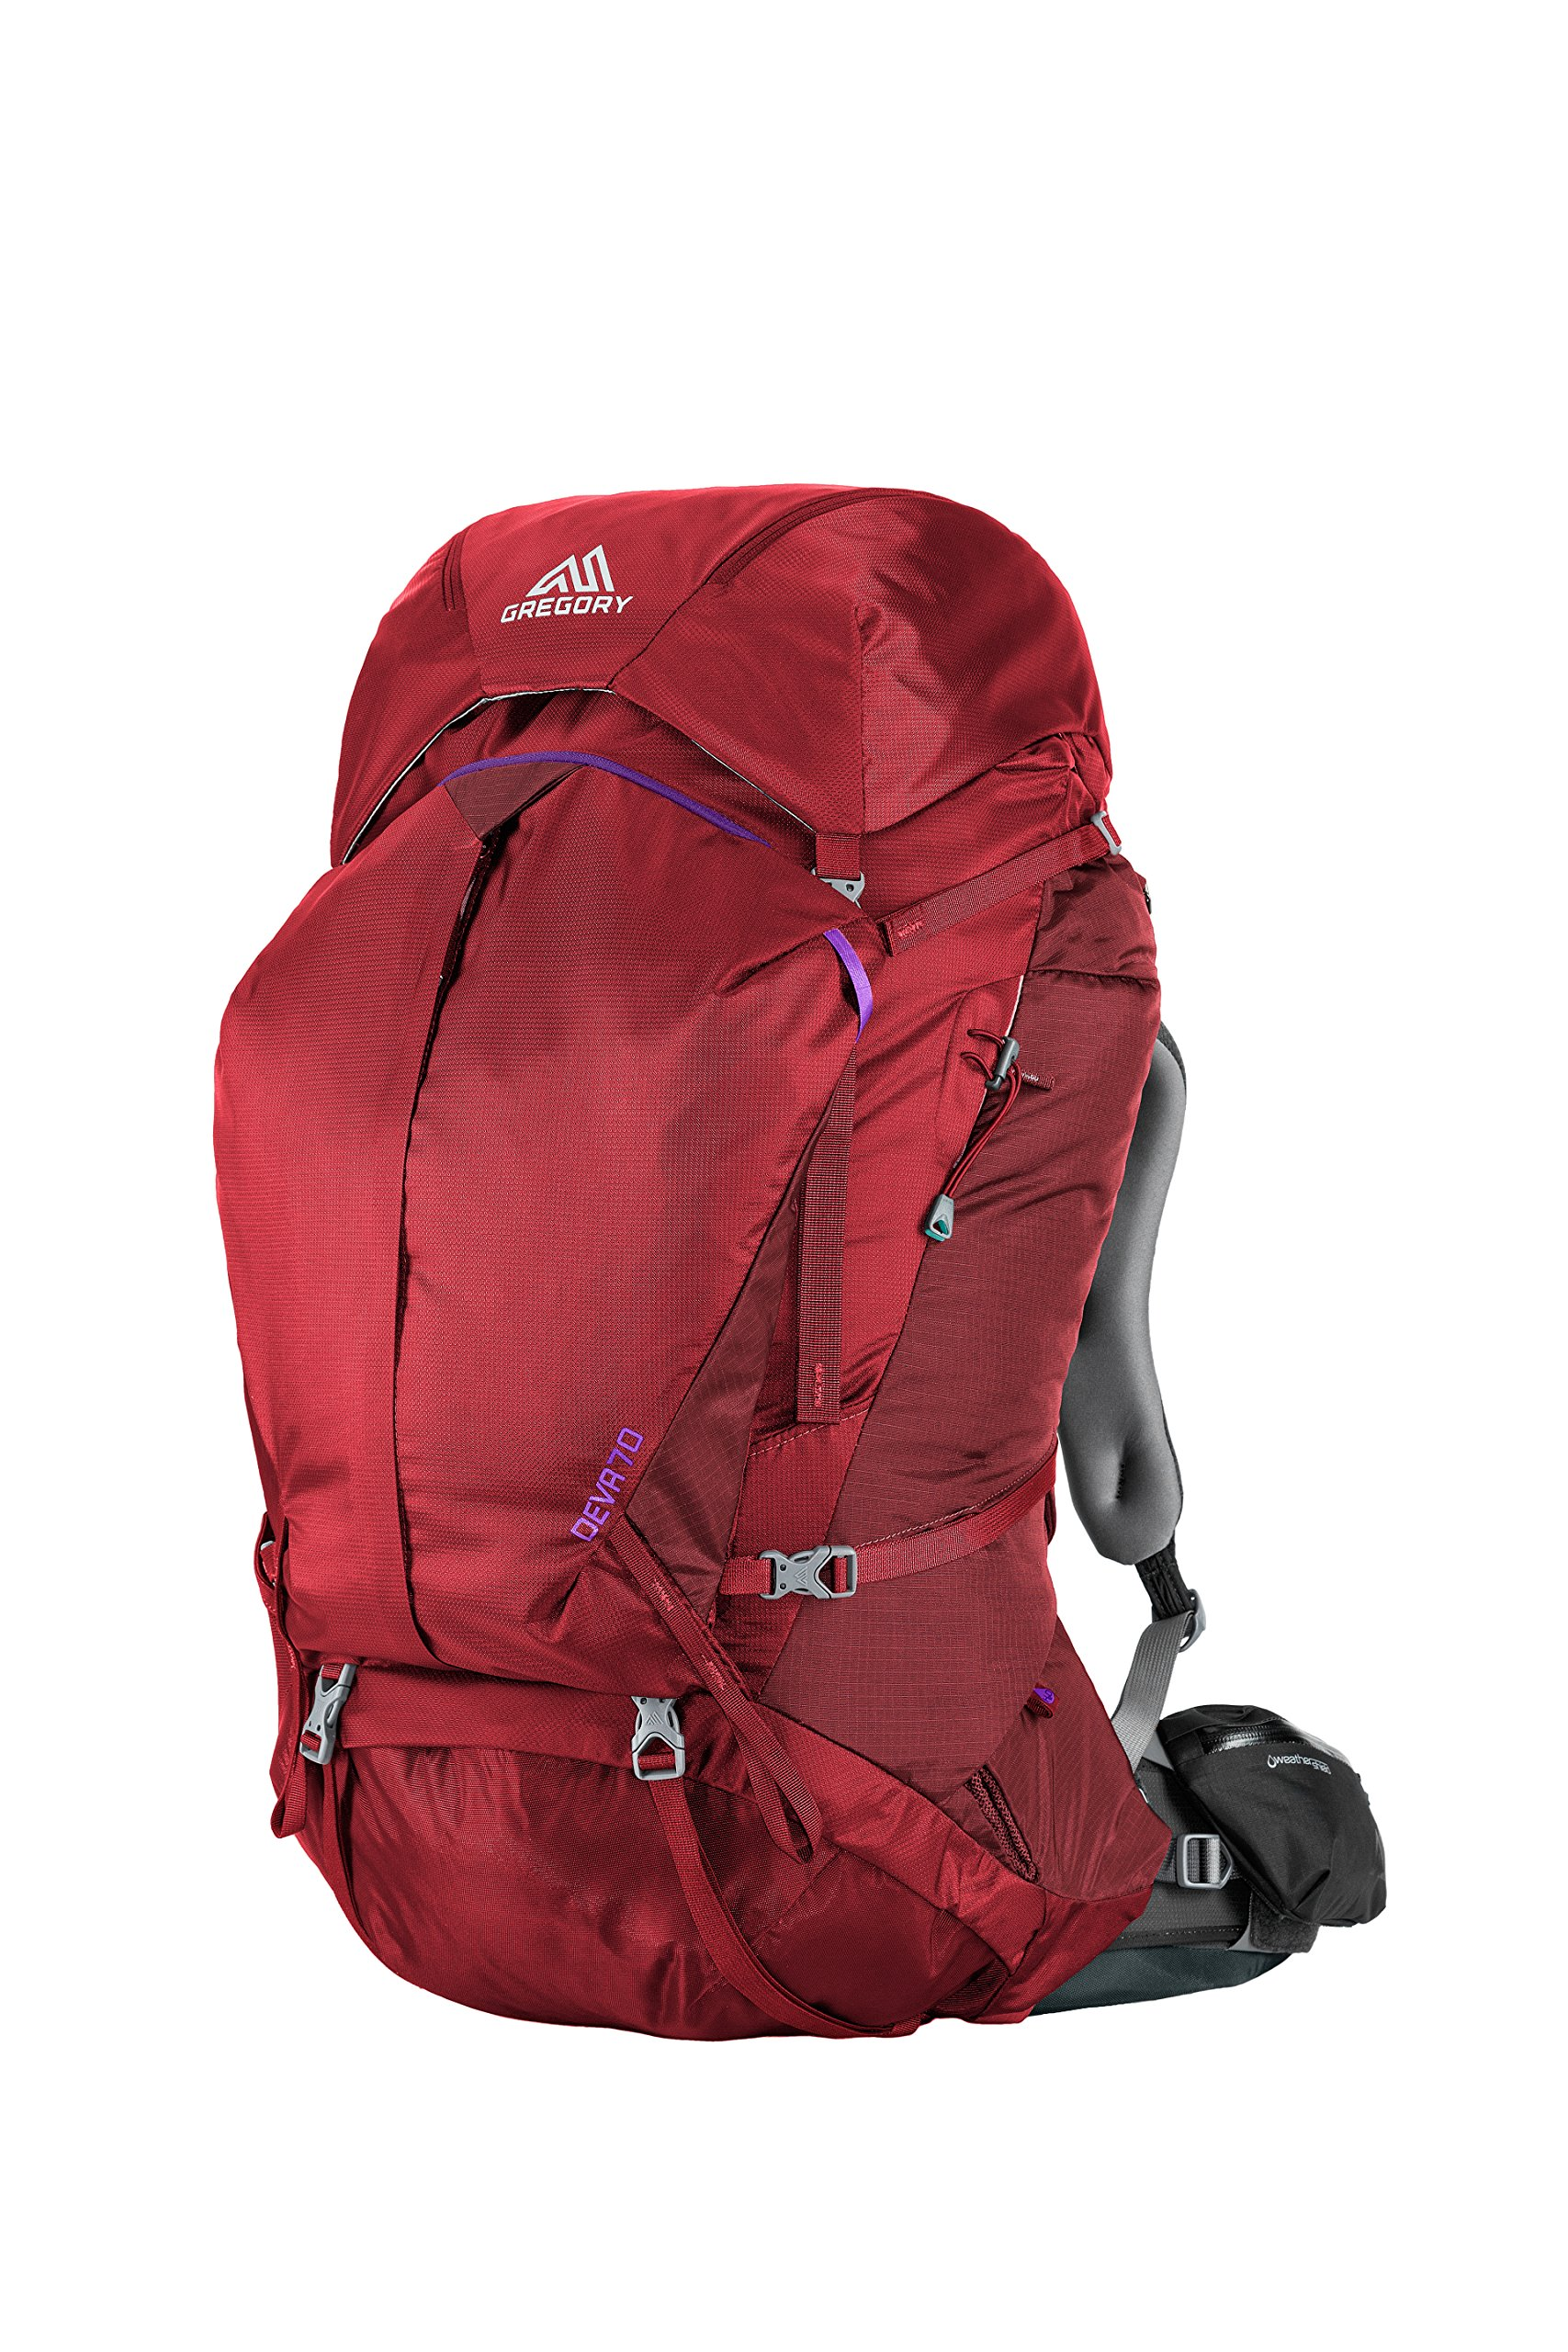 Gregory Mountain Products Deva 70 Liter Women's Multi Day Hiking Backpack | Backpacking, Camping, Travel | Rain Cover, Hydration Sleeve & Daypack, Durable Suspension | Premium Comfort on the Trail, Ruby Red, Small by Gregory